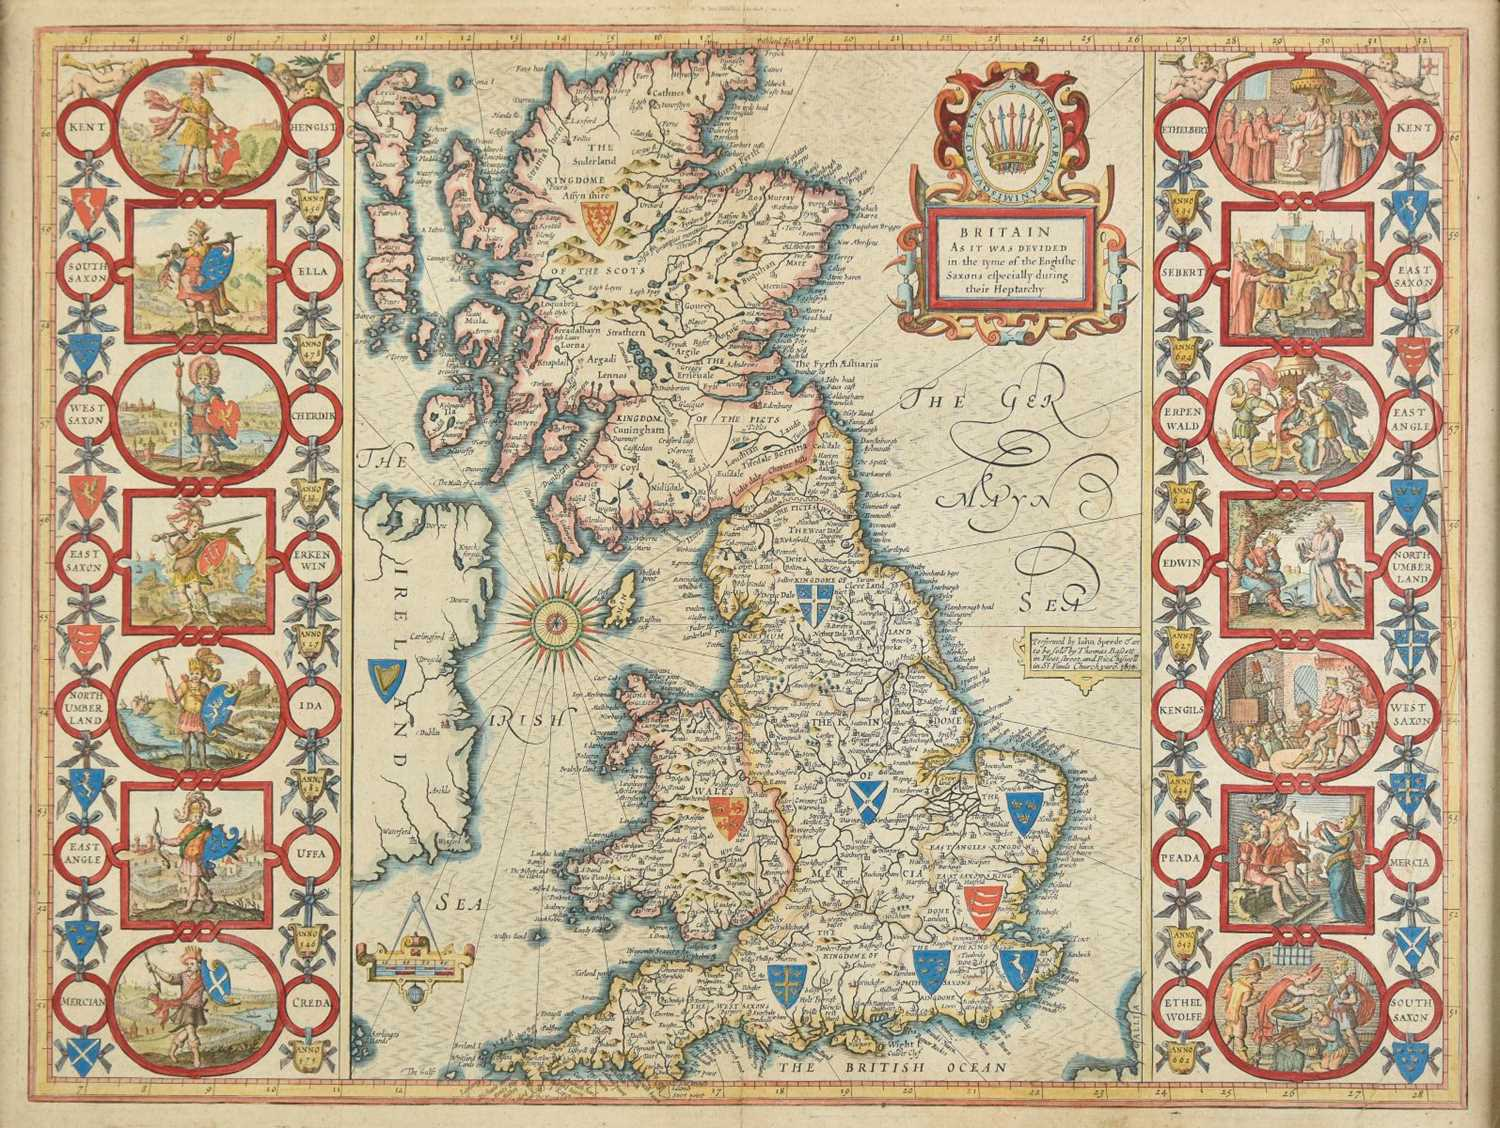 Lot 12 - British Isles. Speed (John),  Britain as it was devided ..., during their Heptarchy, 1676